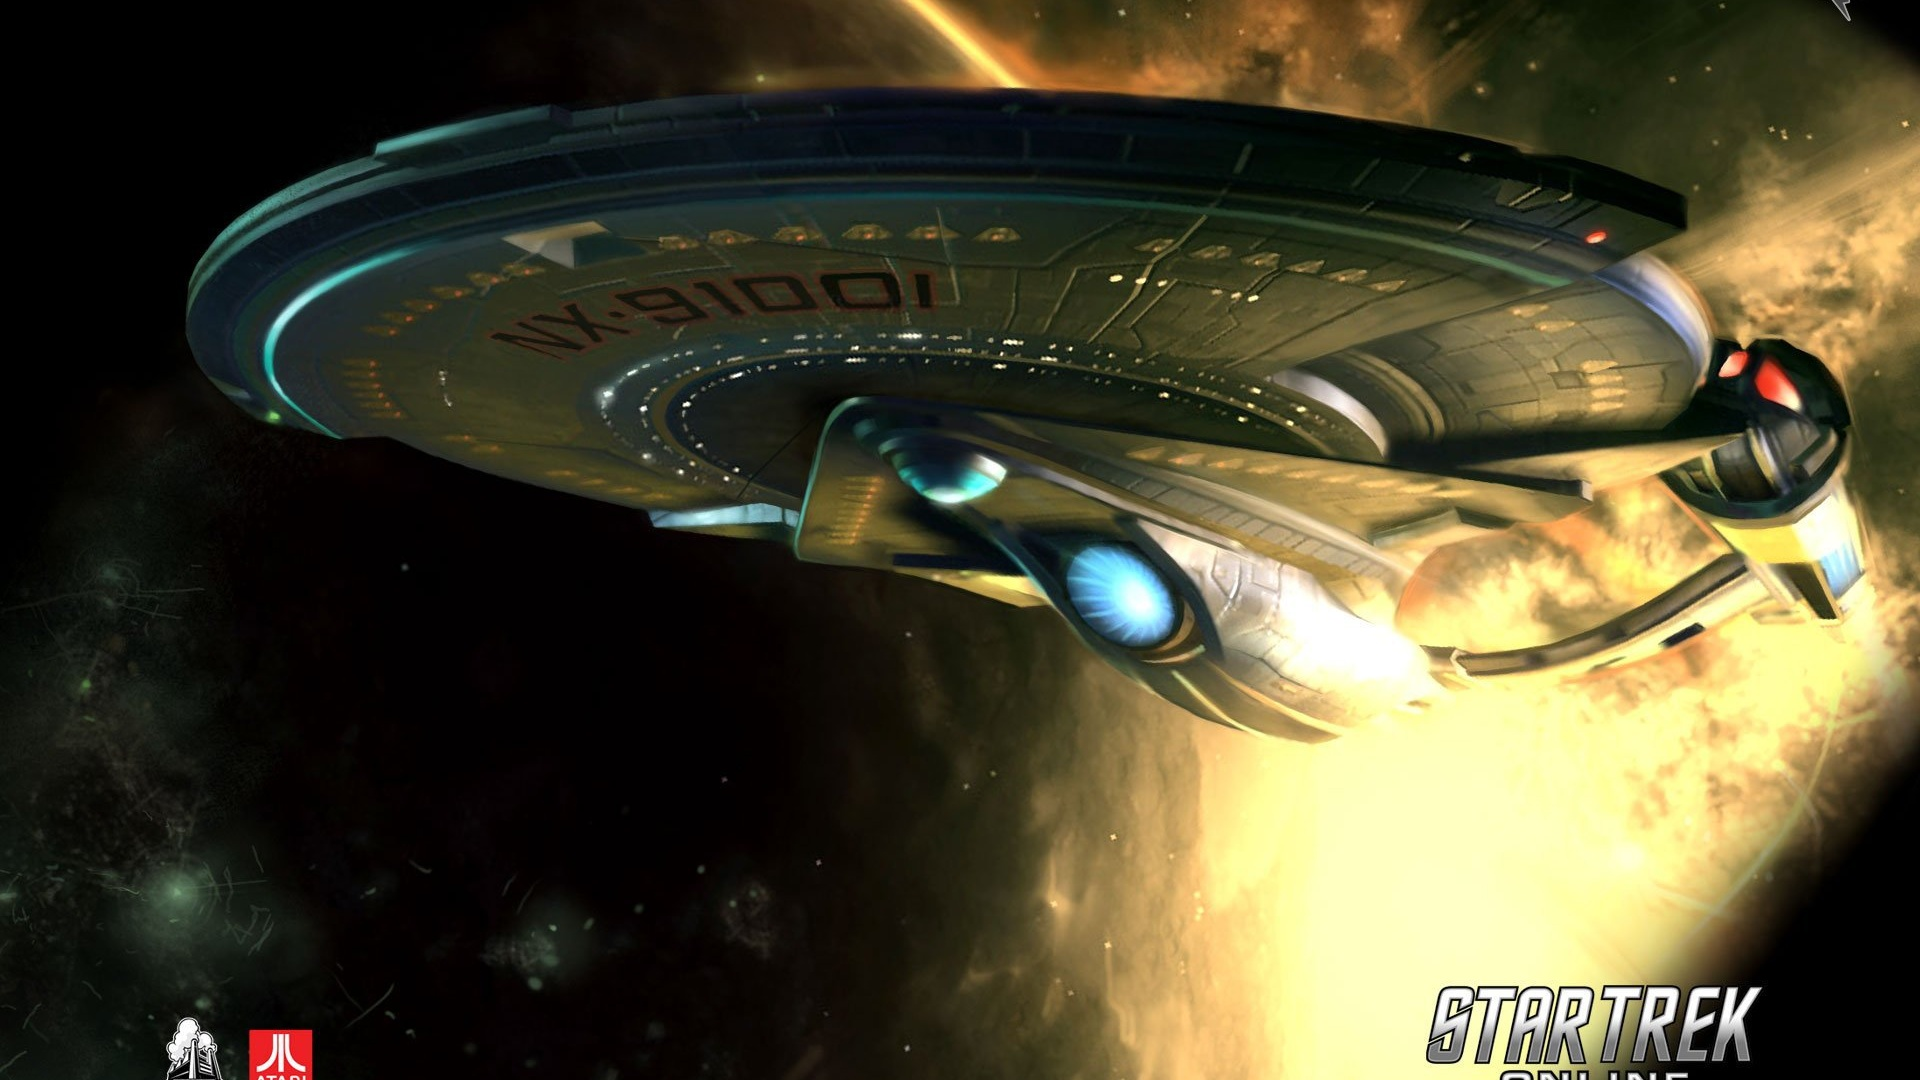 1920x1080 star trek online how to set wallpaper on your desktop click the download link from above and set the wallpaper on the desktop from your os